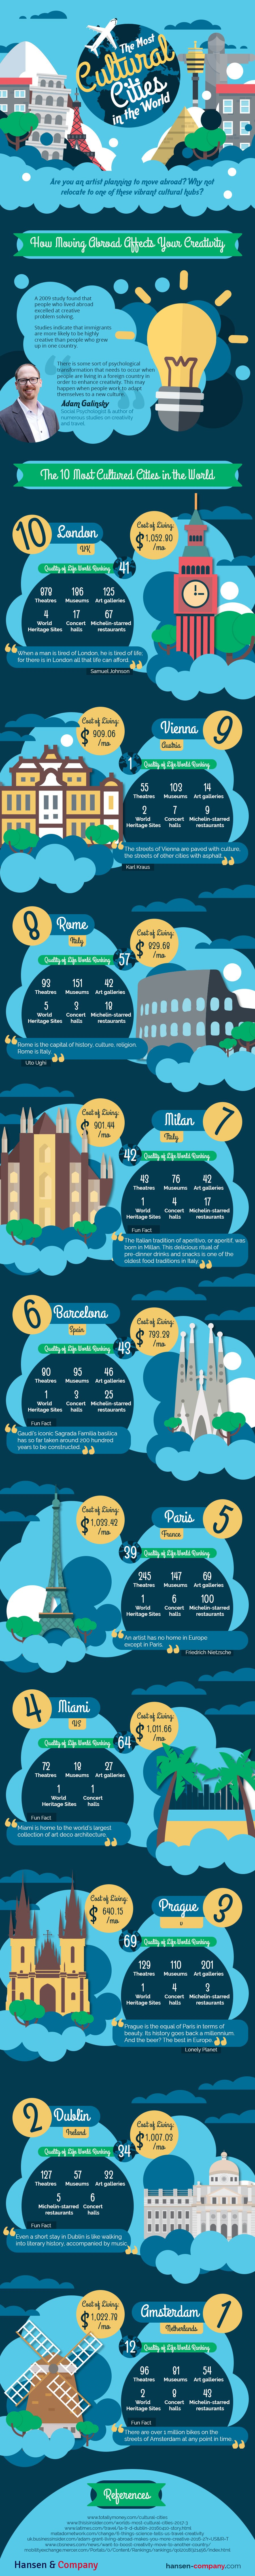 The Most Cultural Cities In The World